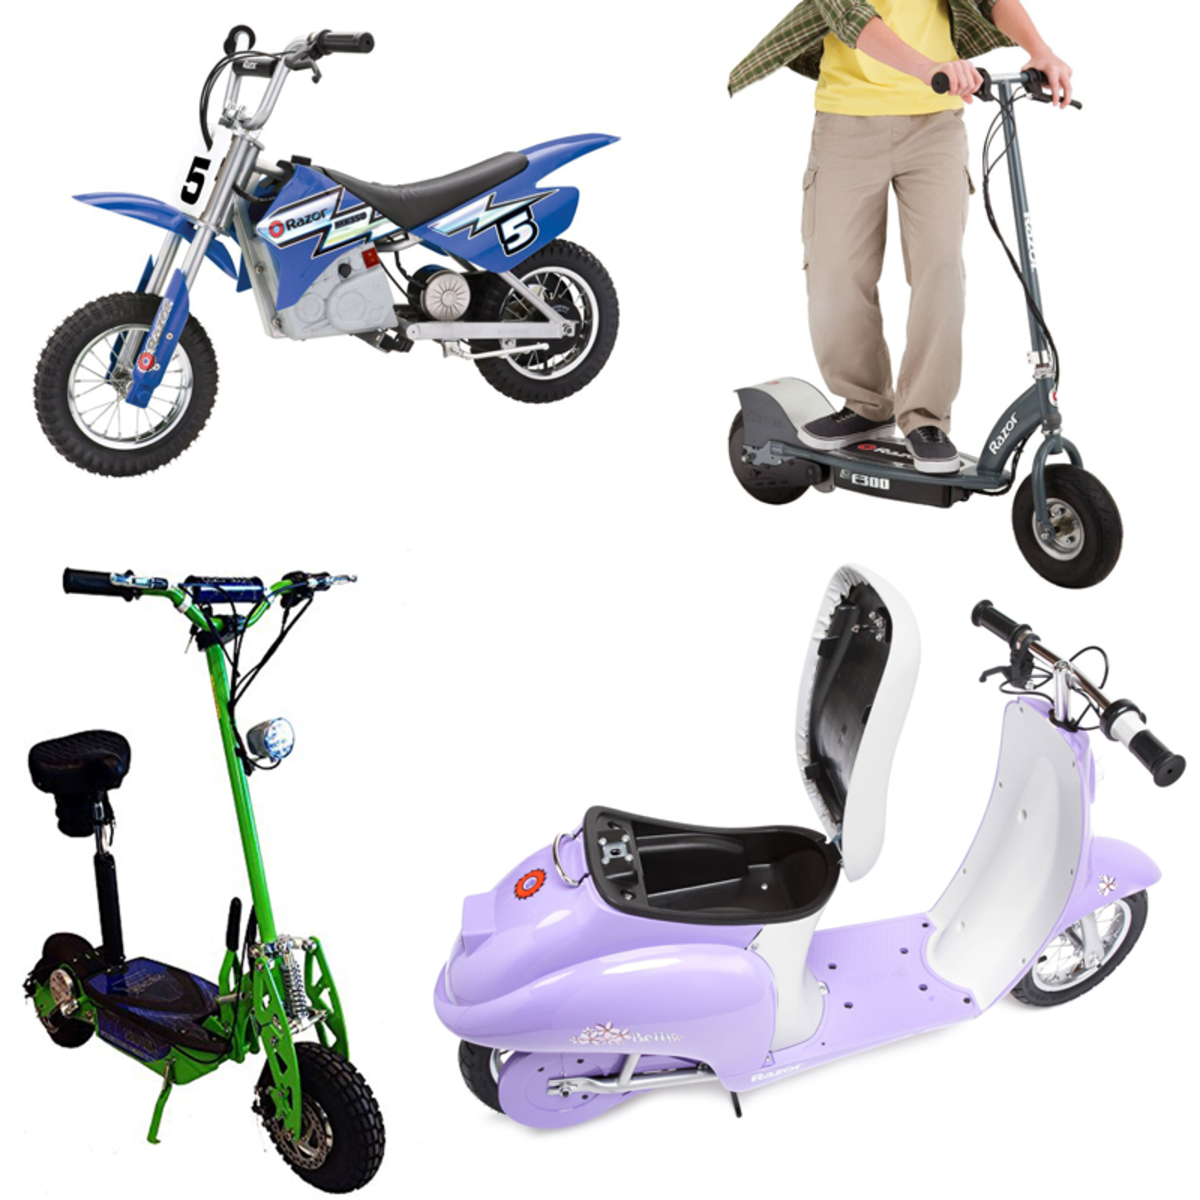 The 10 Best Electric Scooters for Kids